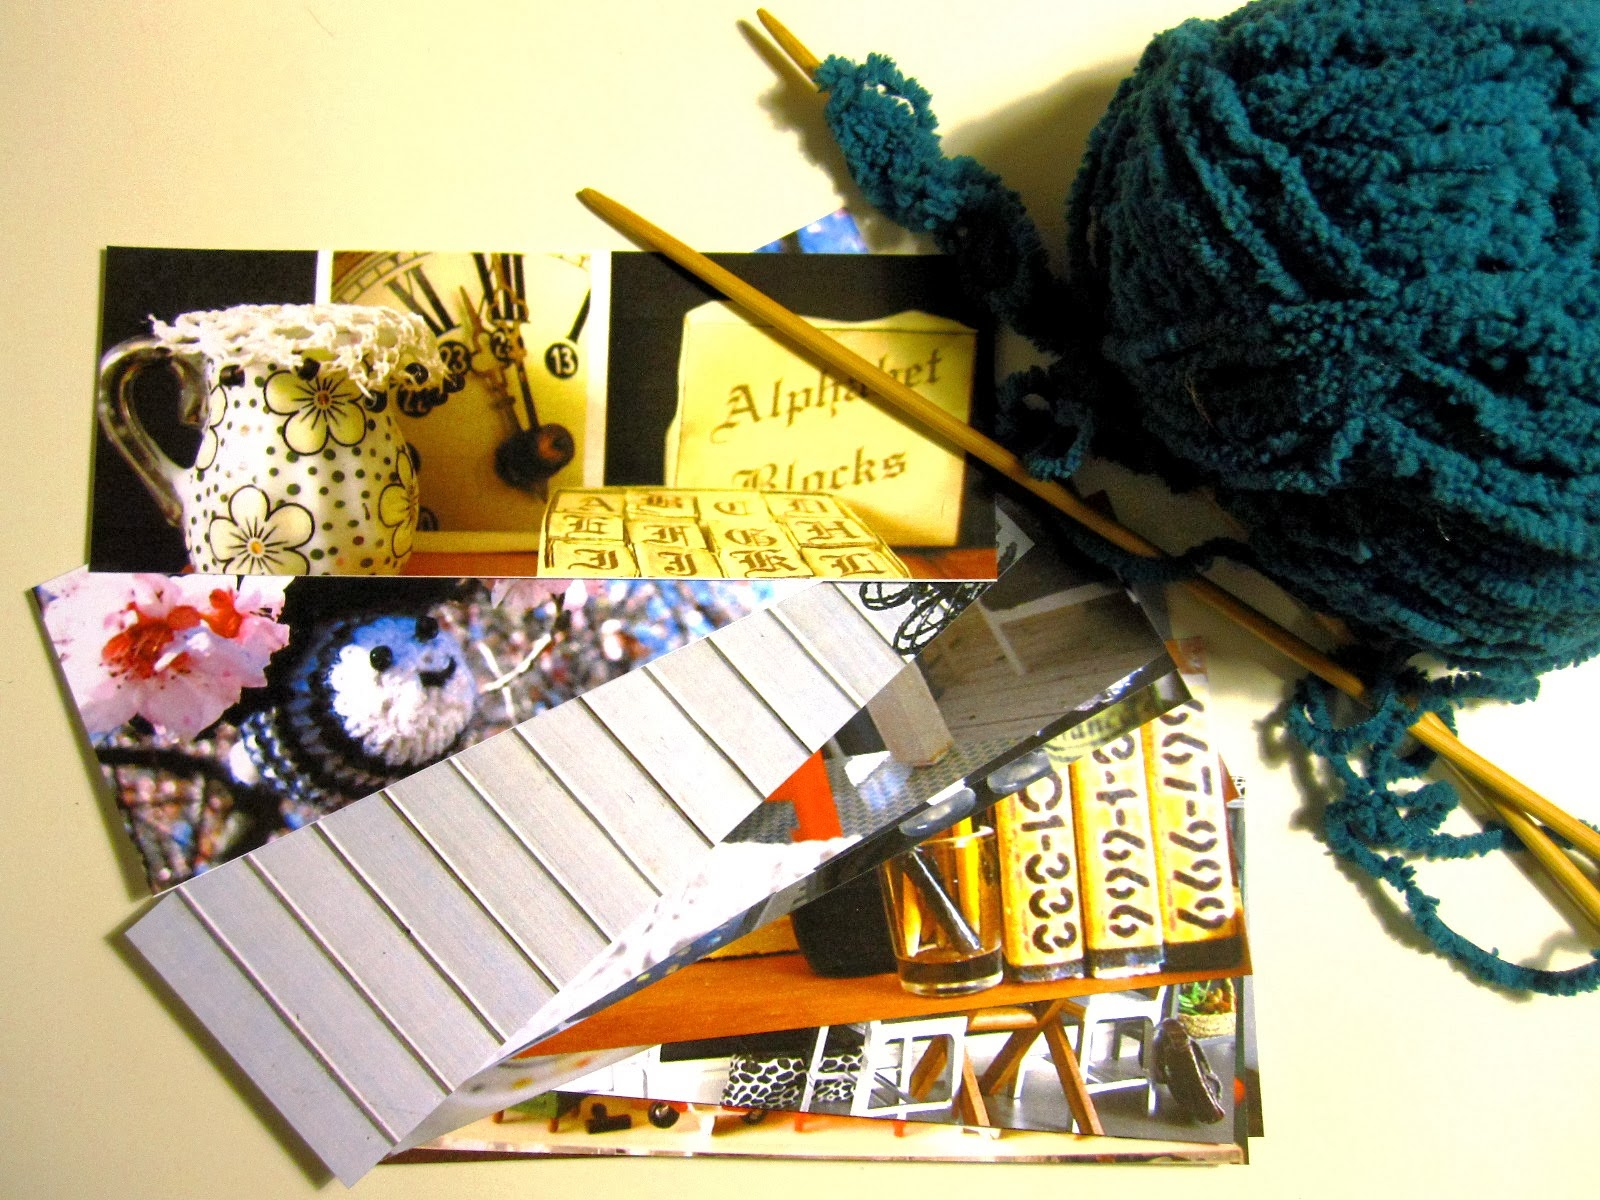 Bookmarks printed from photos of my miniatures and the first row of a teal miniature flokati rug in progress